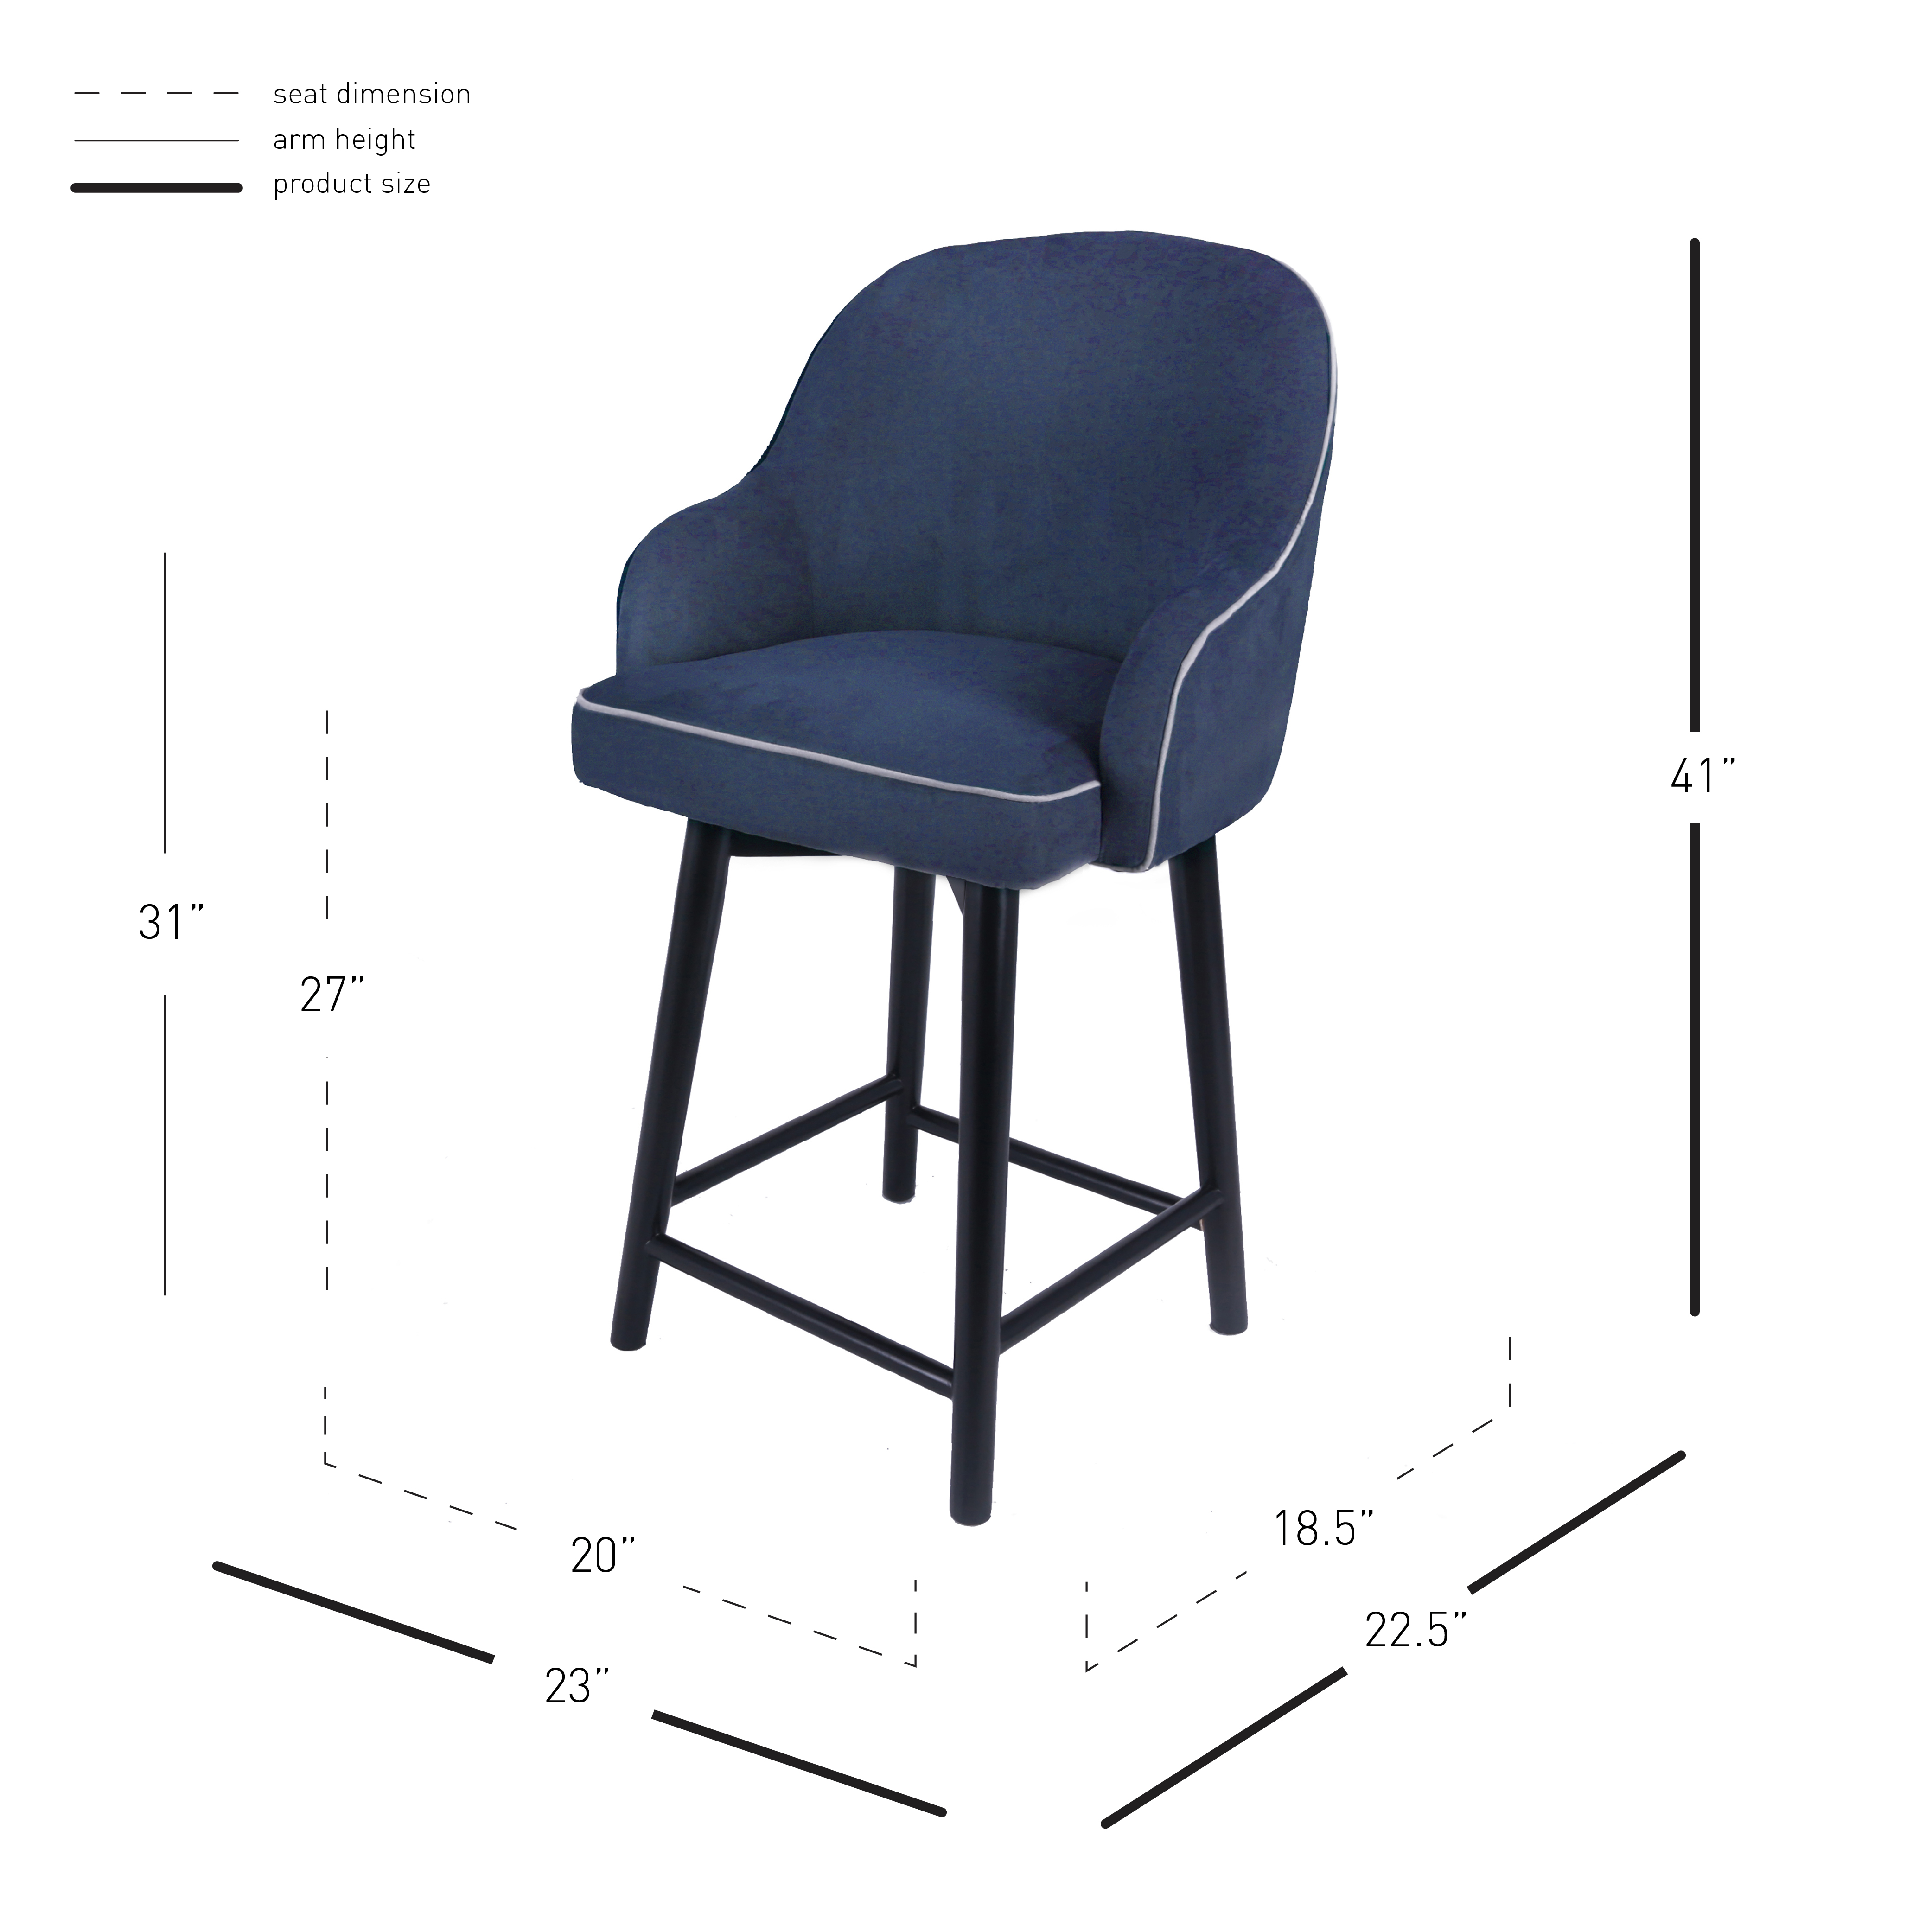 Swell Terry Fabric Swivel Counter Stool Black Herringbone Squirreltailoven Fun Painted Chair Ideas Images Squirreltailovenorg